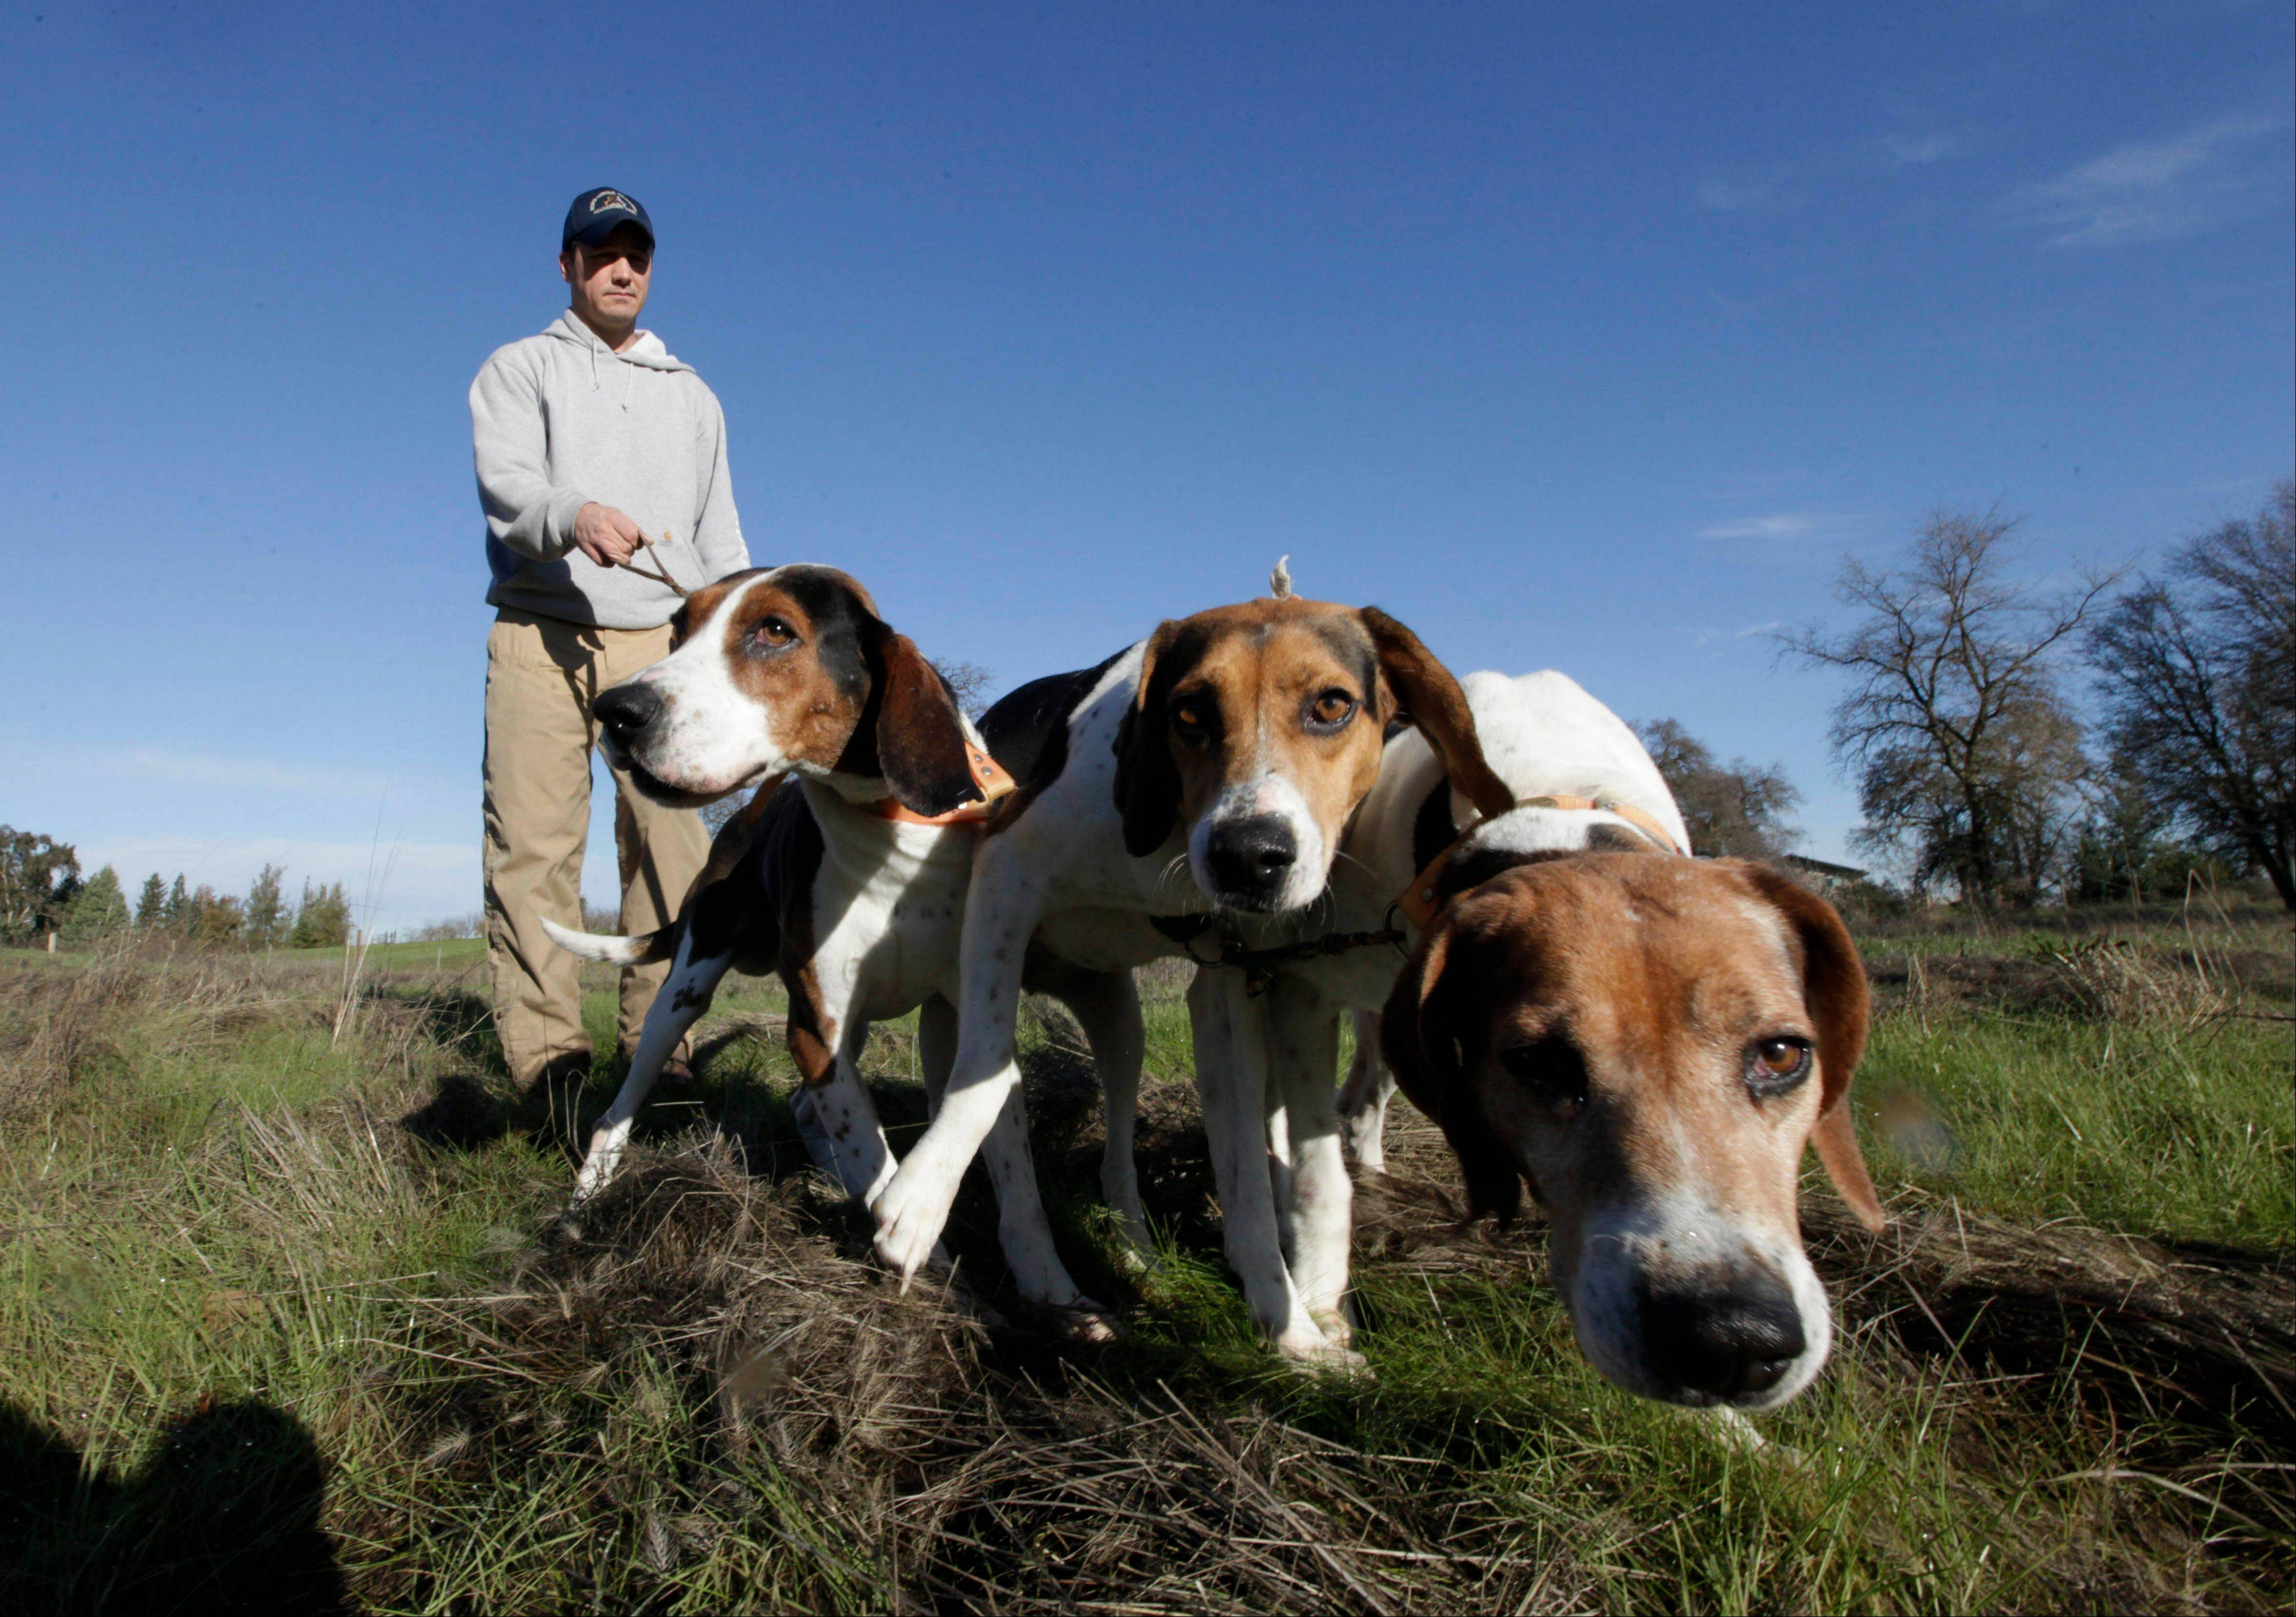 Josh Brones, president of the California Houndsmen for Conservation, walks his hunting dogs, Dollar, left, Sequoia, center and Tanner right, near his home in Wilton, Calif. After Jan. 1, California hunters will no longer be able to use dogs to hunt bobcats and bears, under a law authored by Sen. Ted Lieu, D- Torrence.